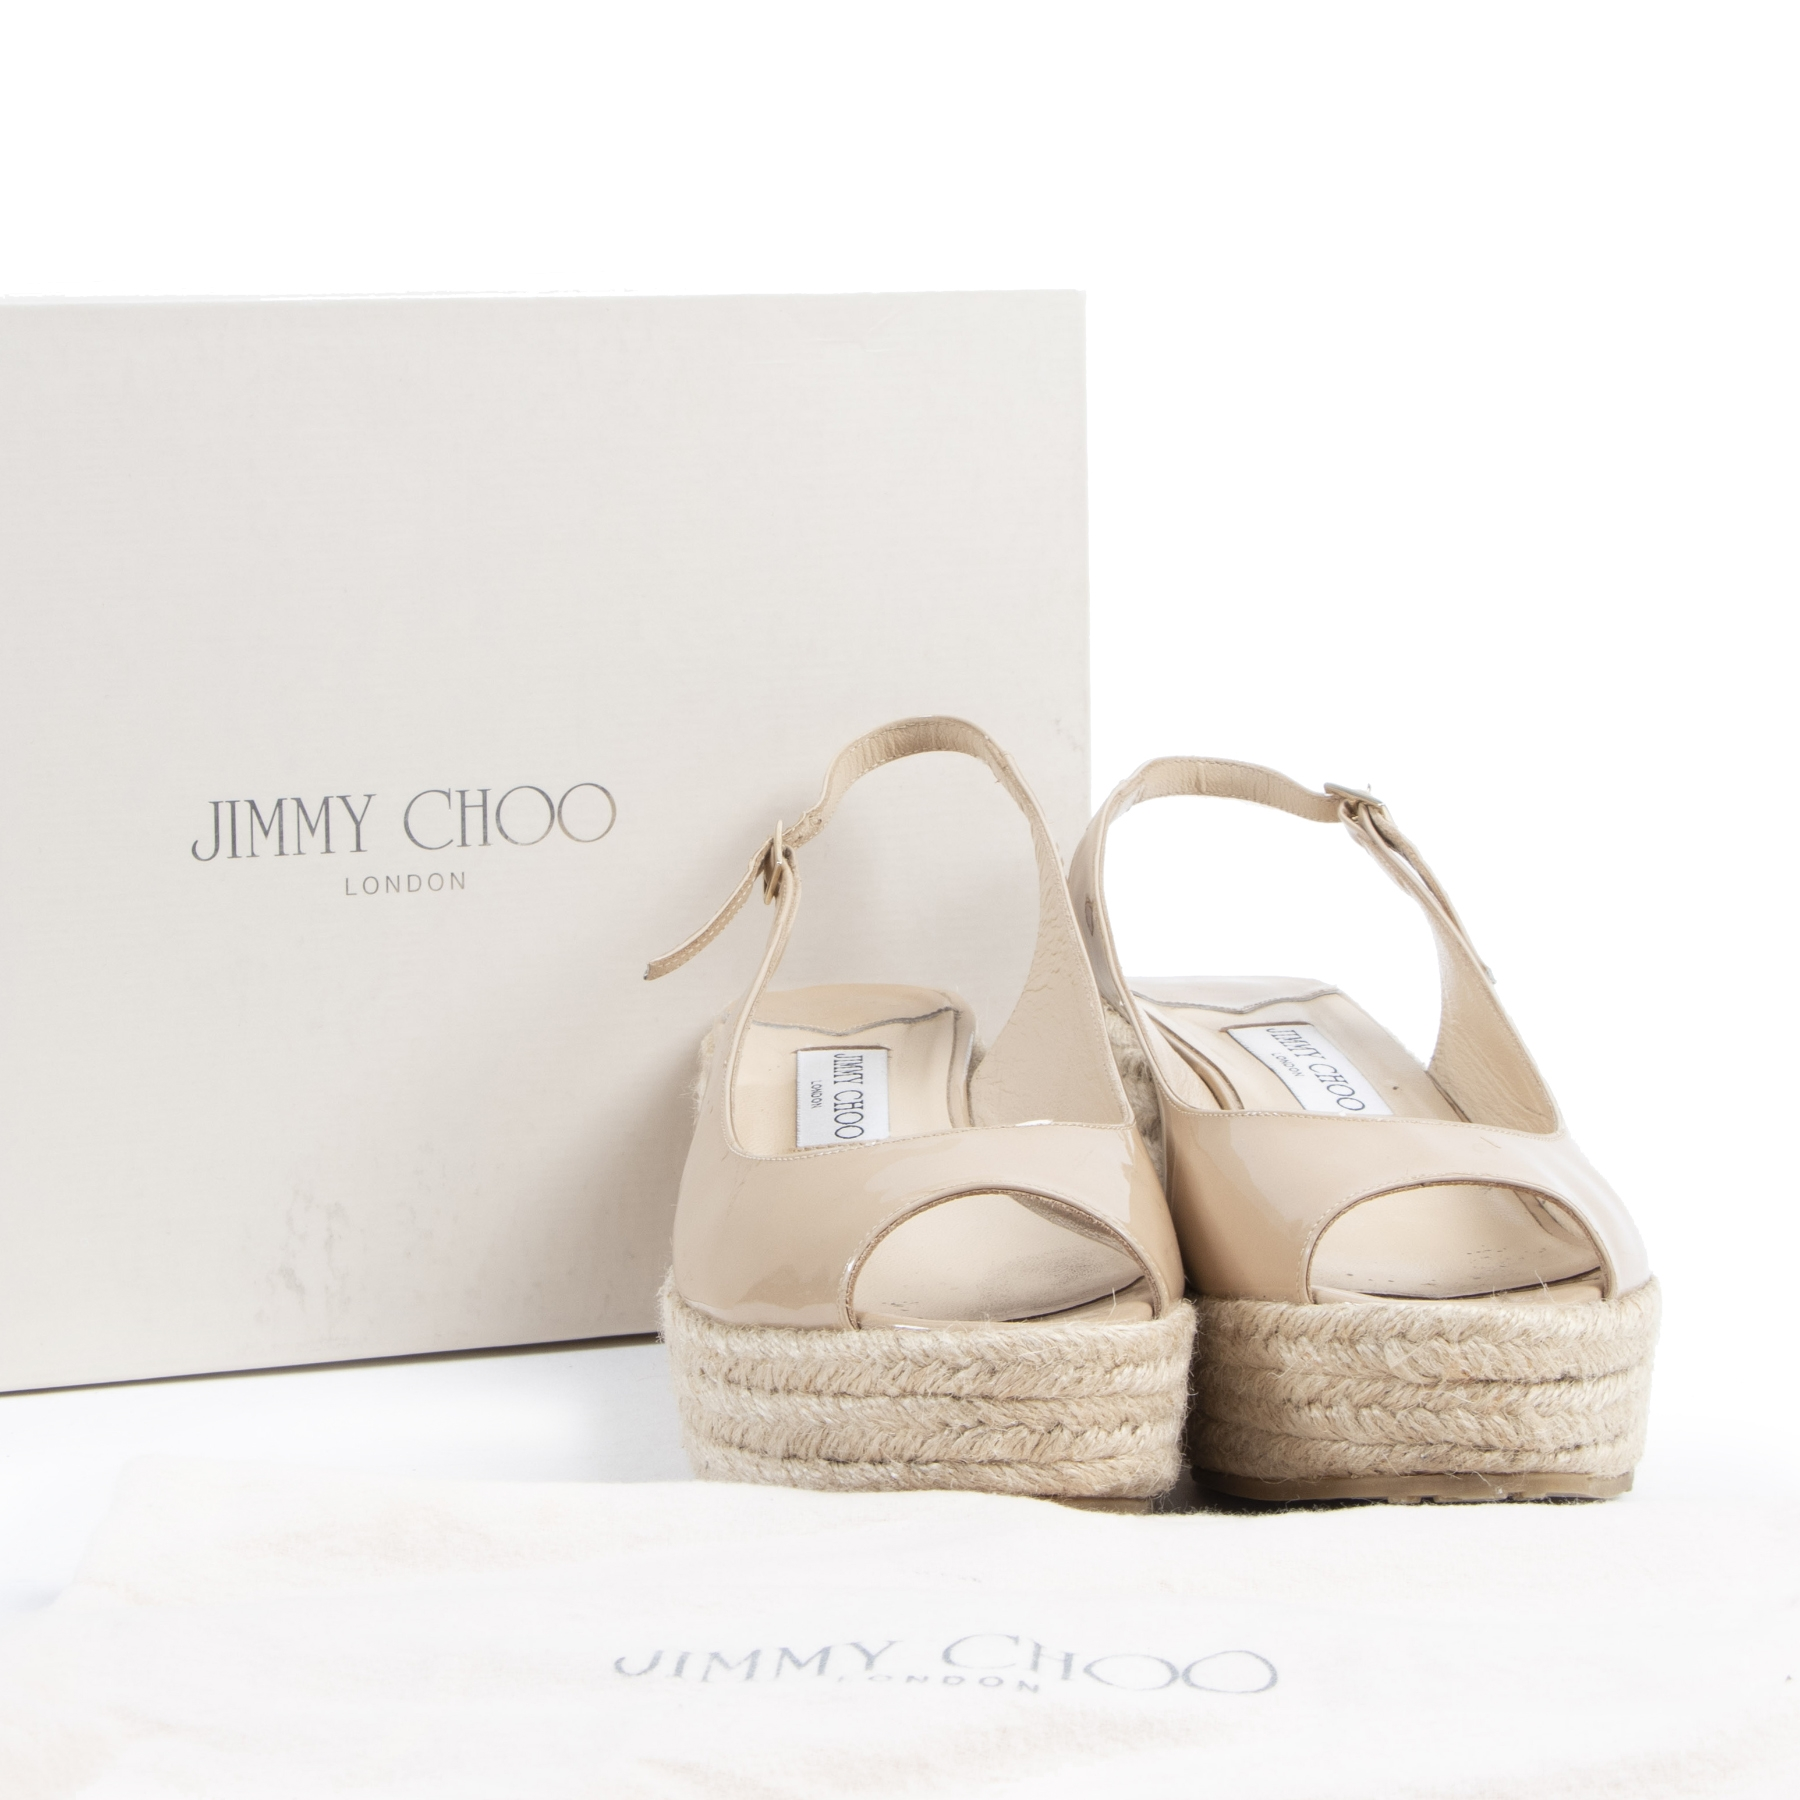 Authentic secondhand Jimmy Choo Nude Patent Leather Espadrille Wedges - Size 39 designer shoes accessories designer brands fashion luxury vintage webshop safe secure online shopping